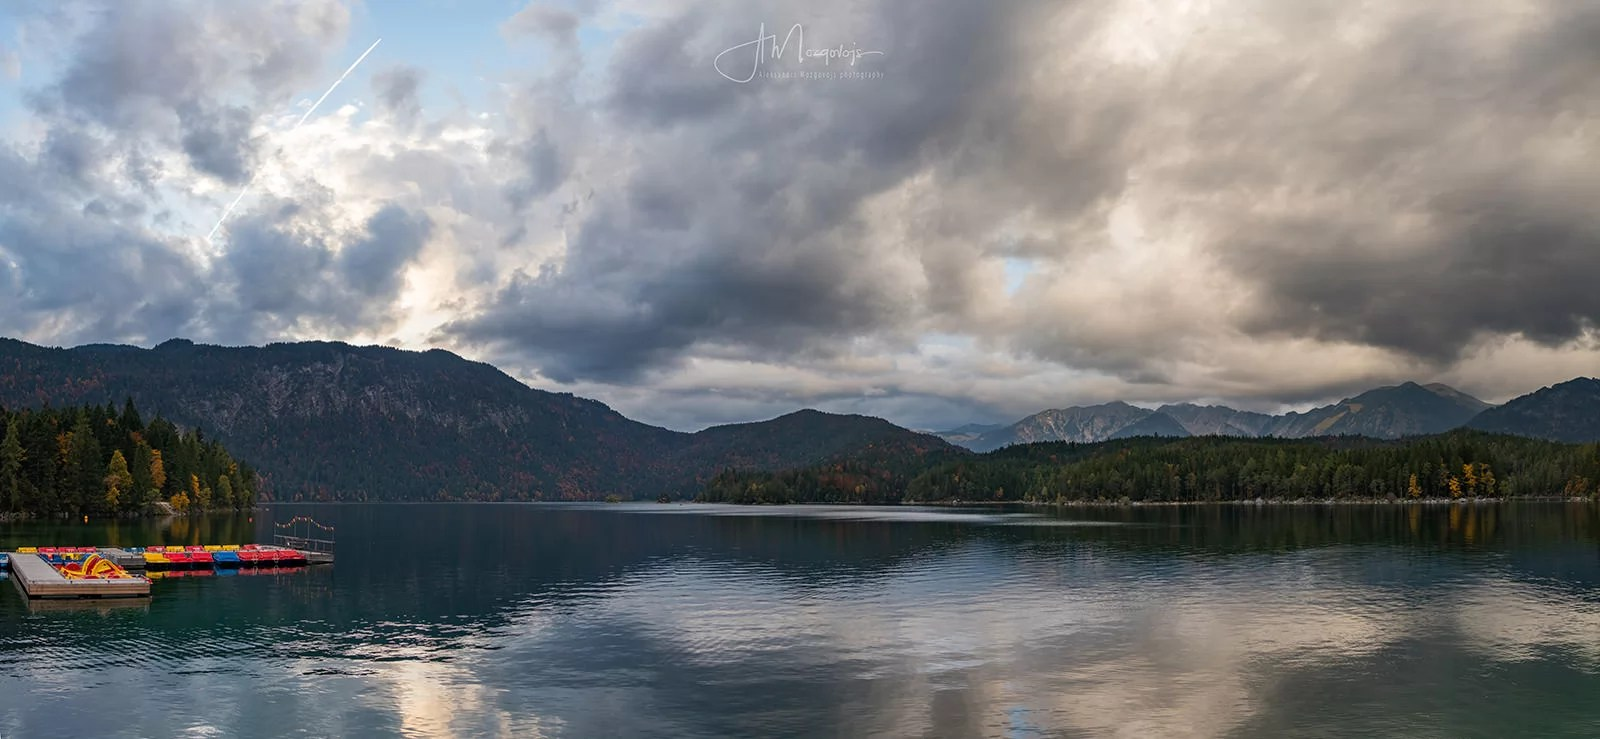 Lake Eibsee in late afternoon